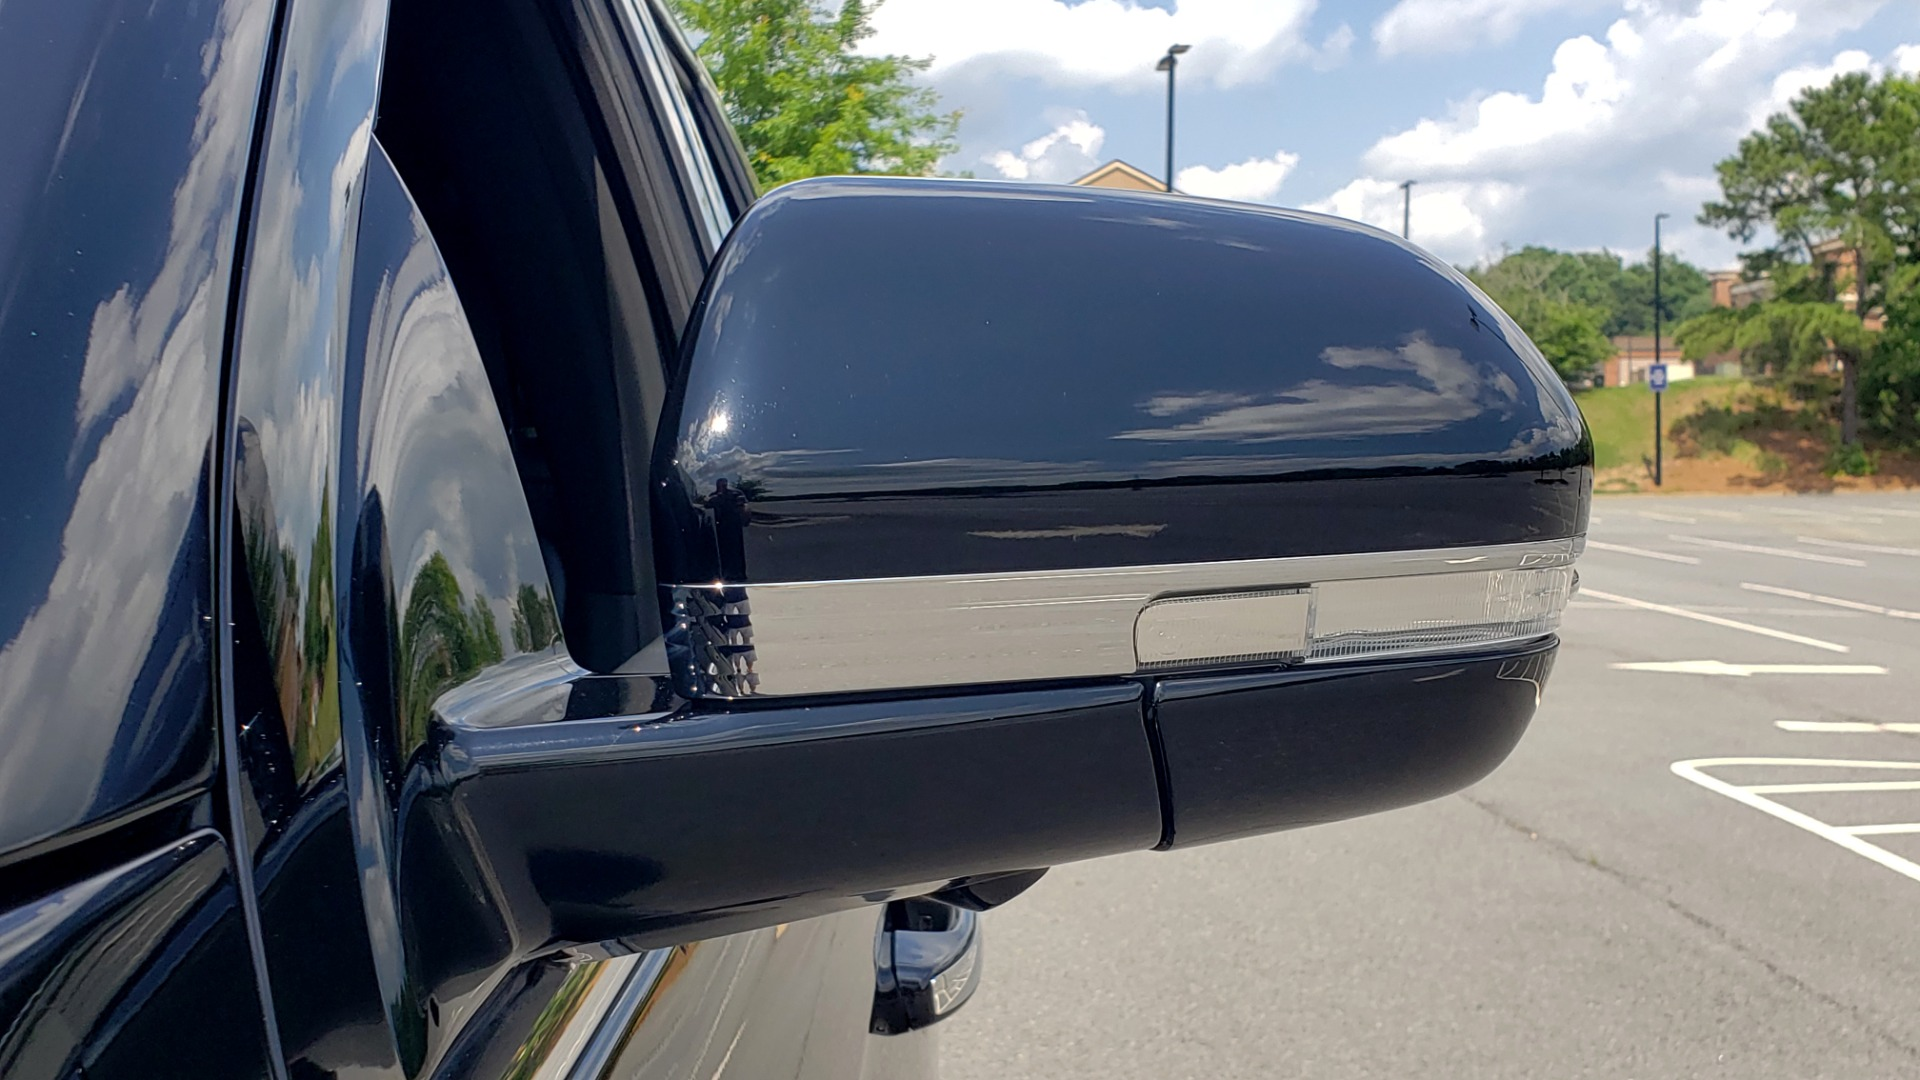 Used 2019 Lincoln NAVIGATOR RESERVE 4X4 / NAV / PANO-ROOF / REVEL ULTIMA AUDIO / 3-ROW / REARVIEW for sale $74,795 at Formula Imports in Charlotte NC 28227 32